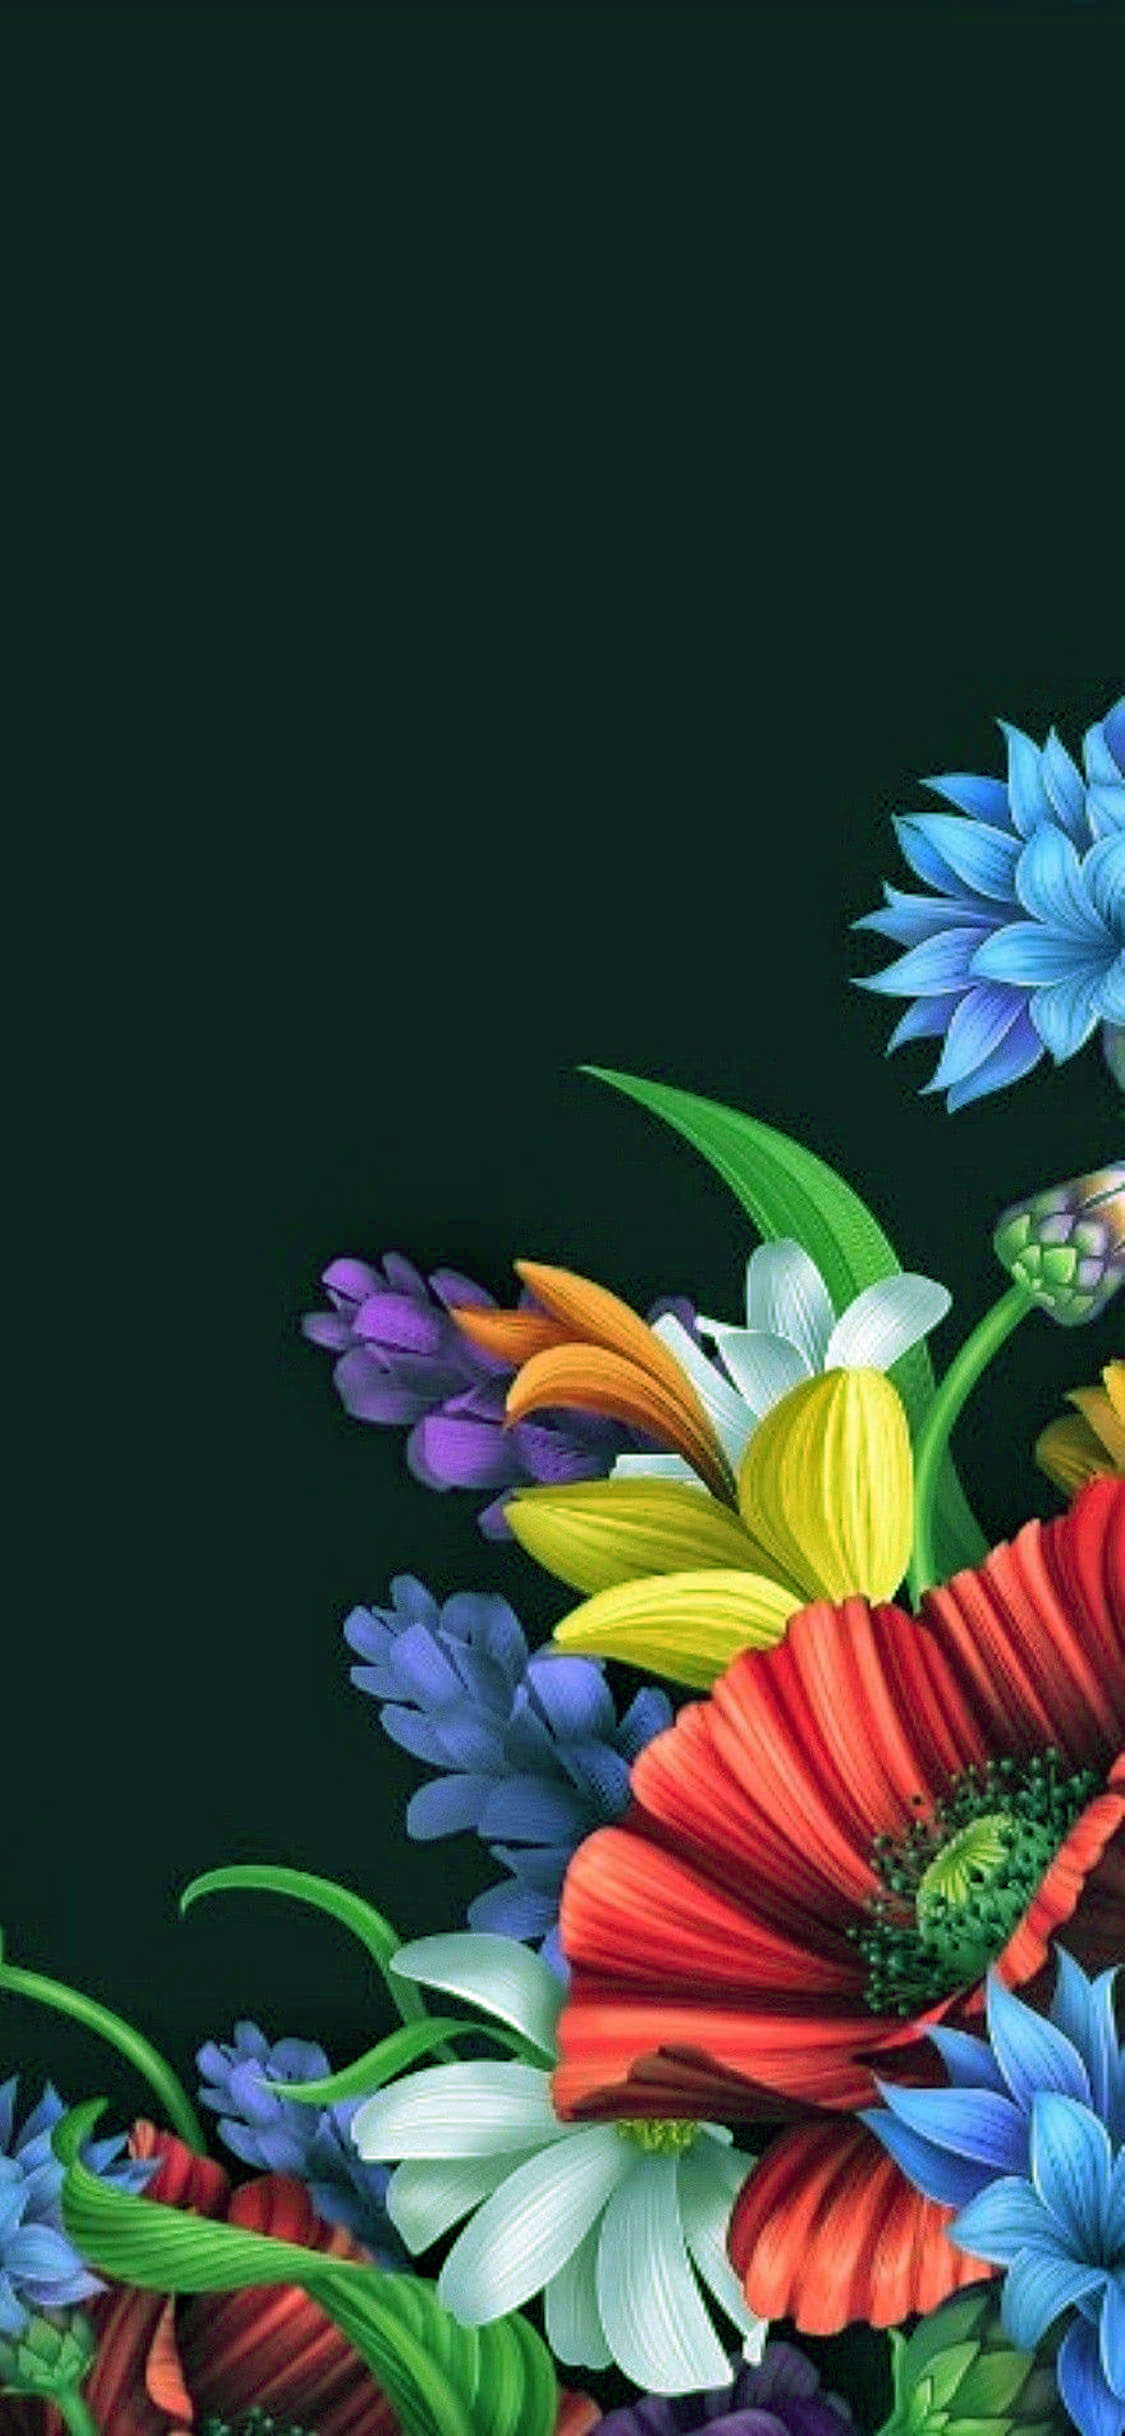 28+ Best Flowers iPhone Wallpapers & Backgrounds - Templatefor